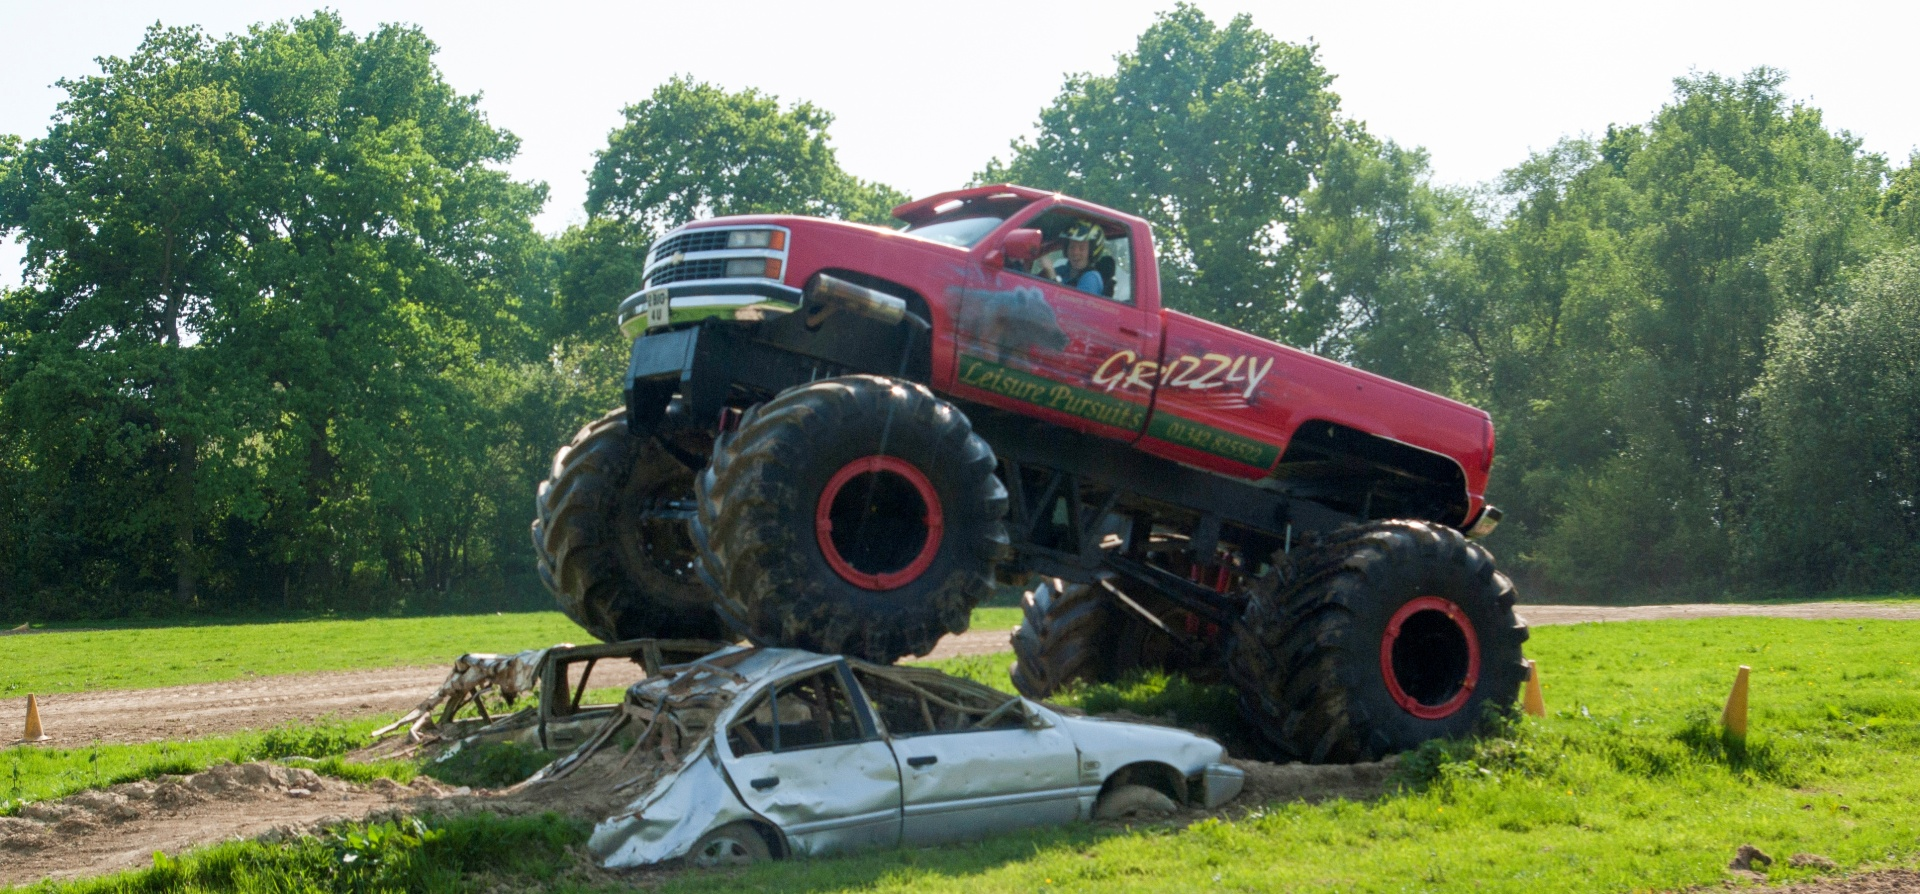 Ultimate Monster Truck Driving Experience-8